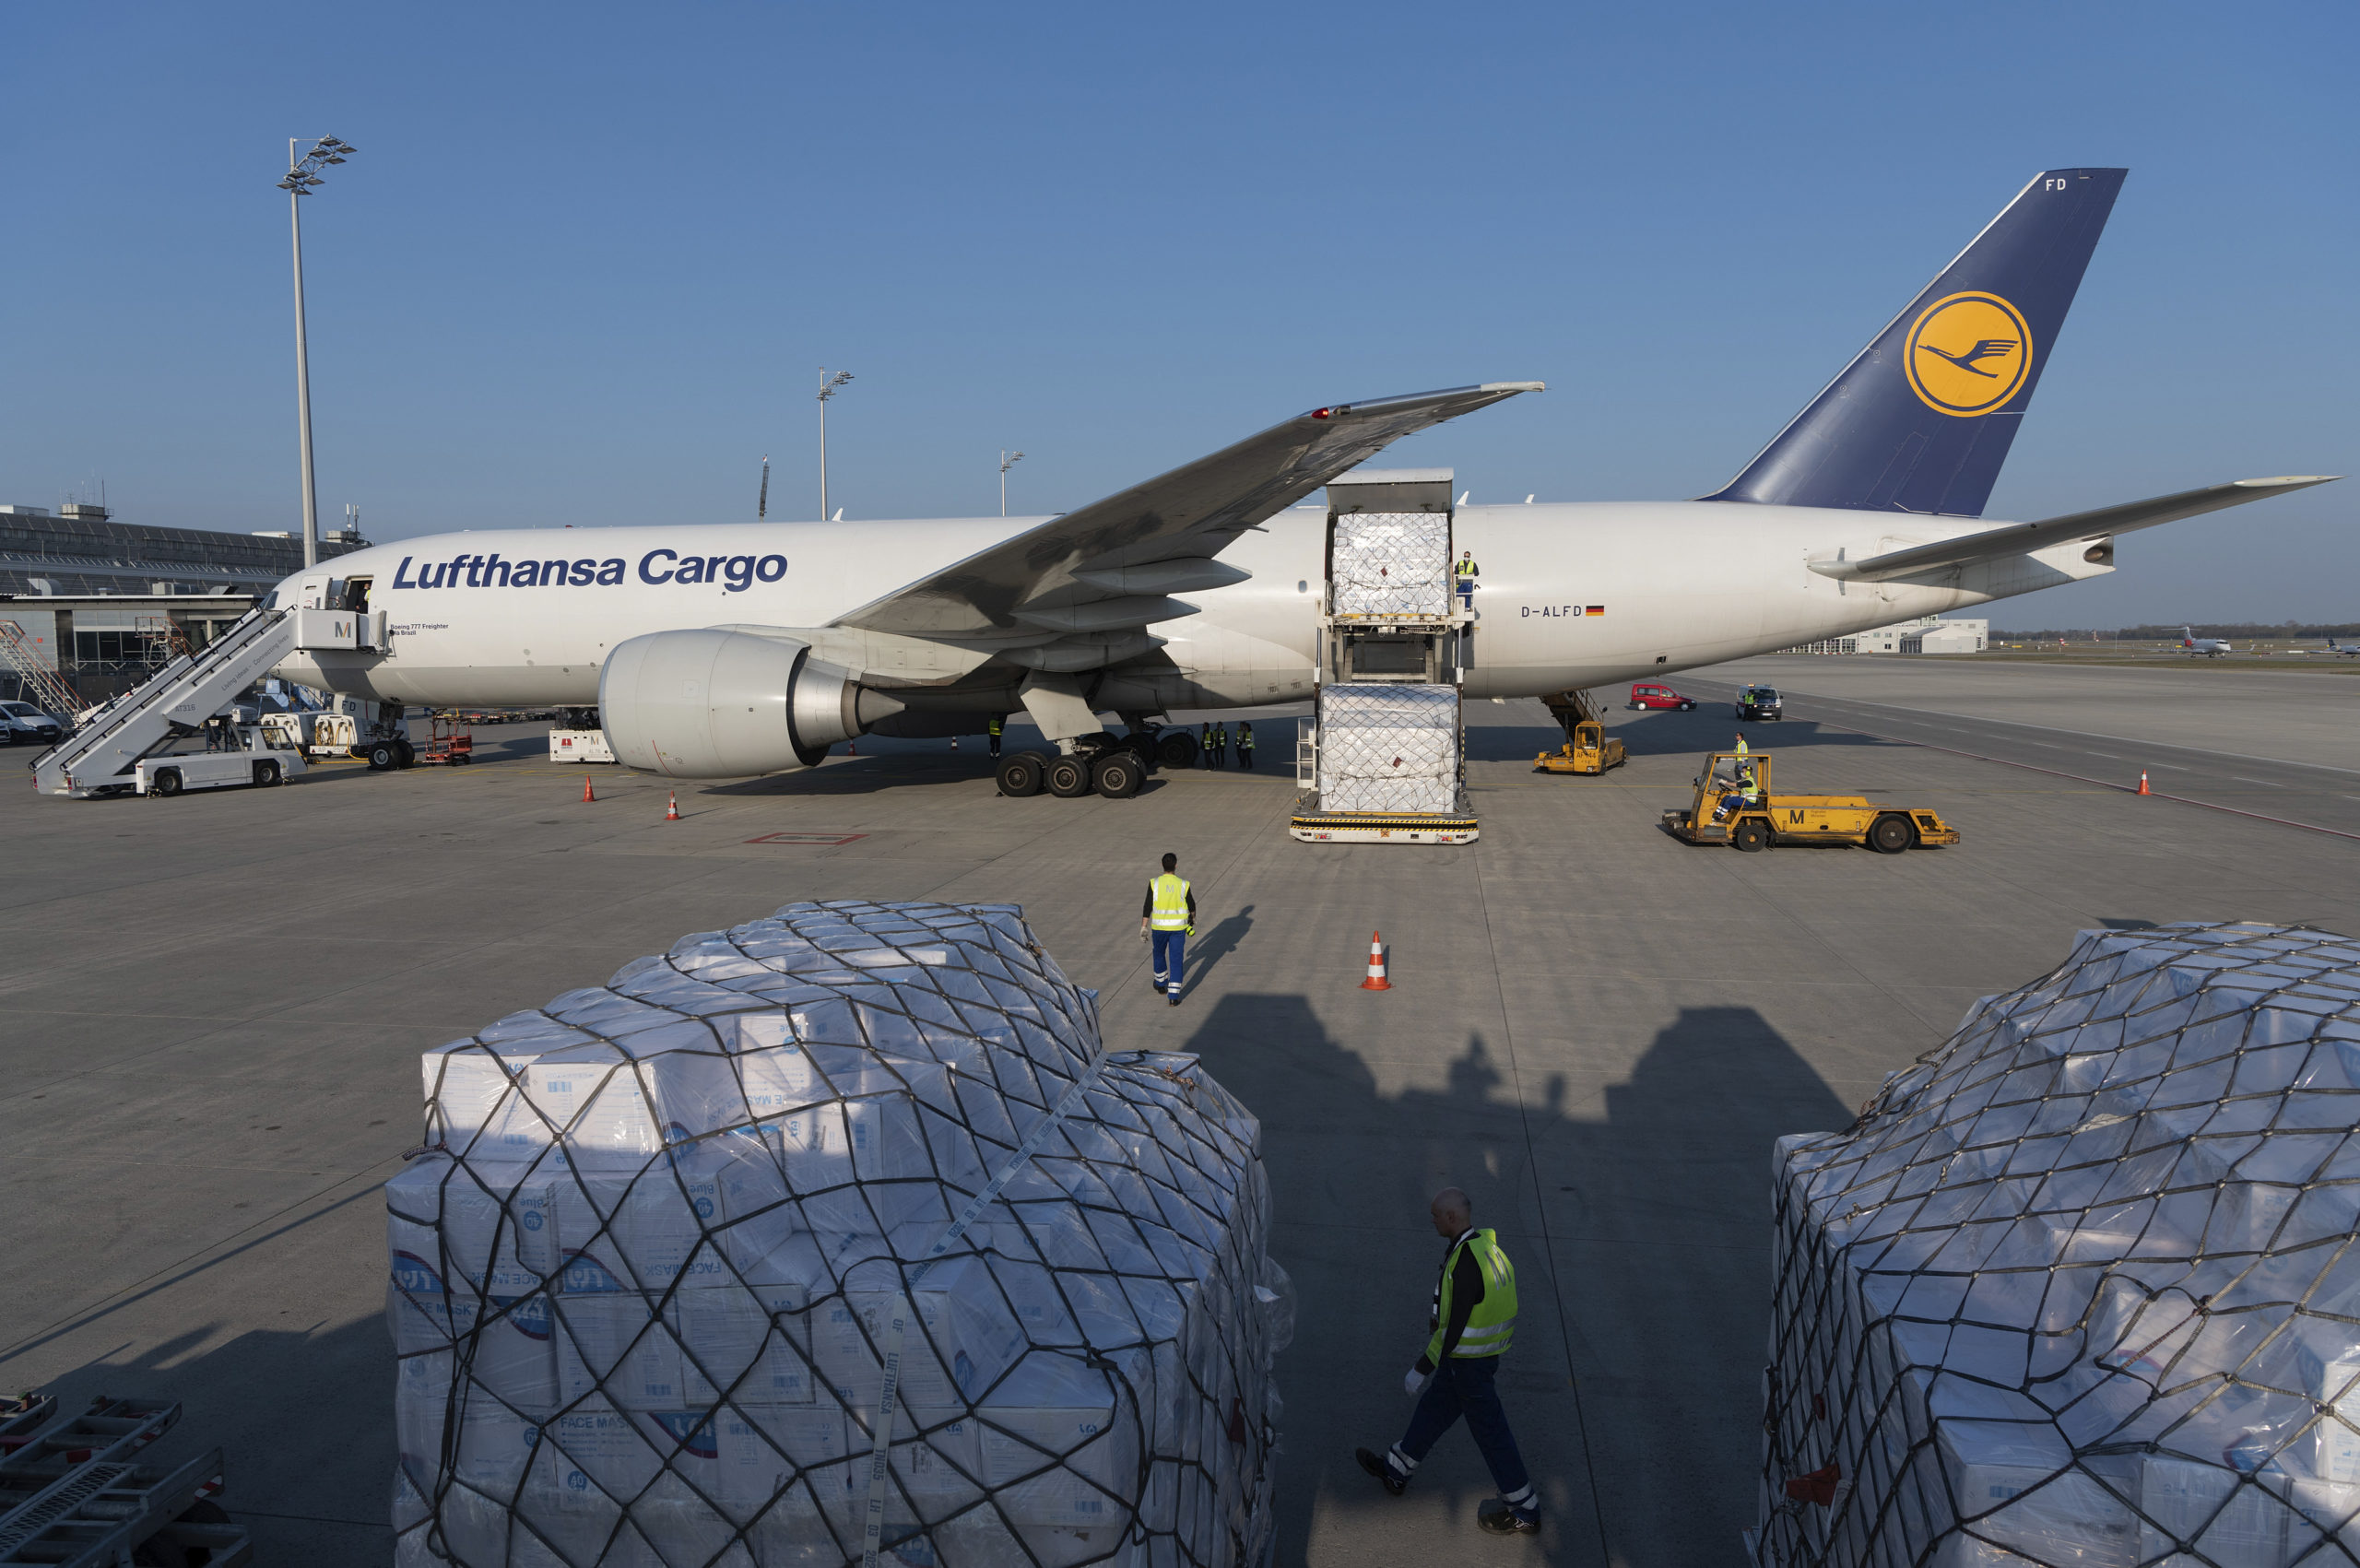 Lufthansa brings eight million protective masks to Munich